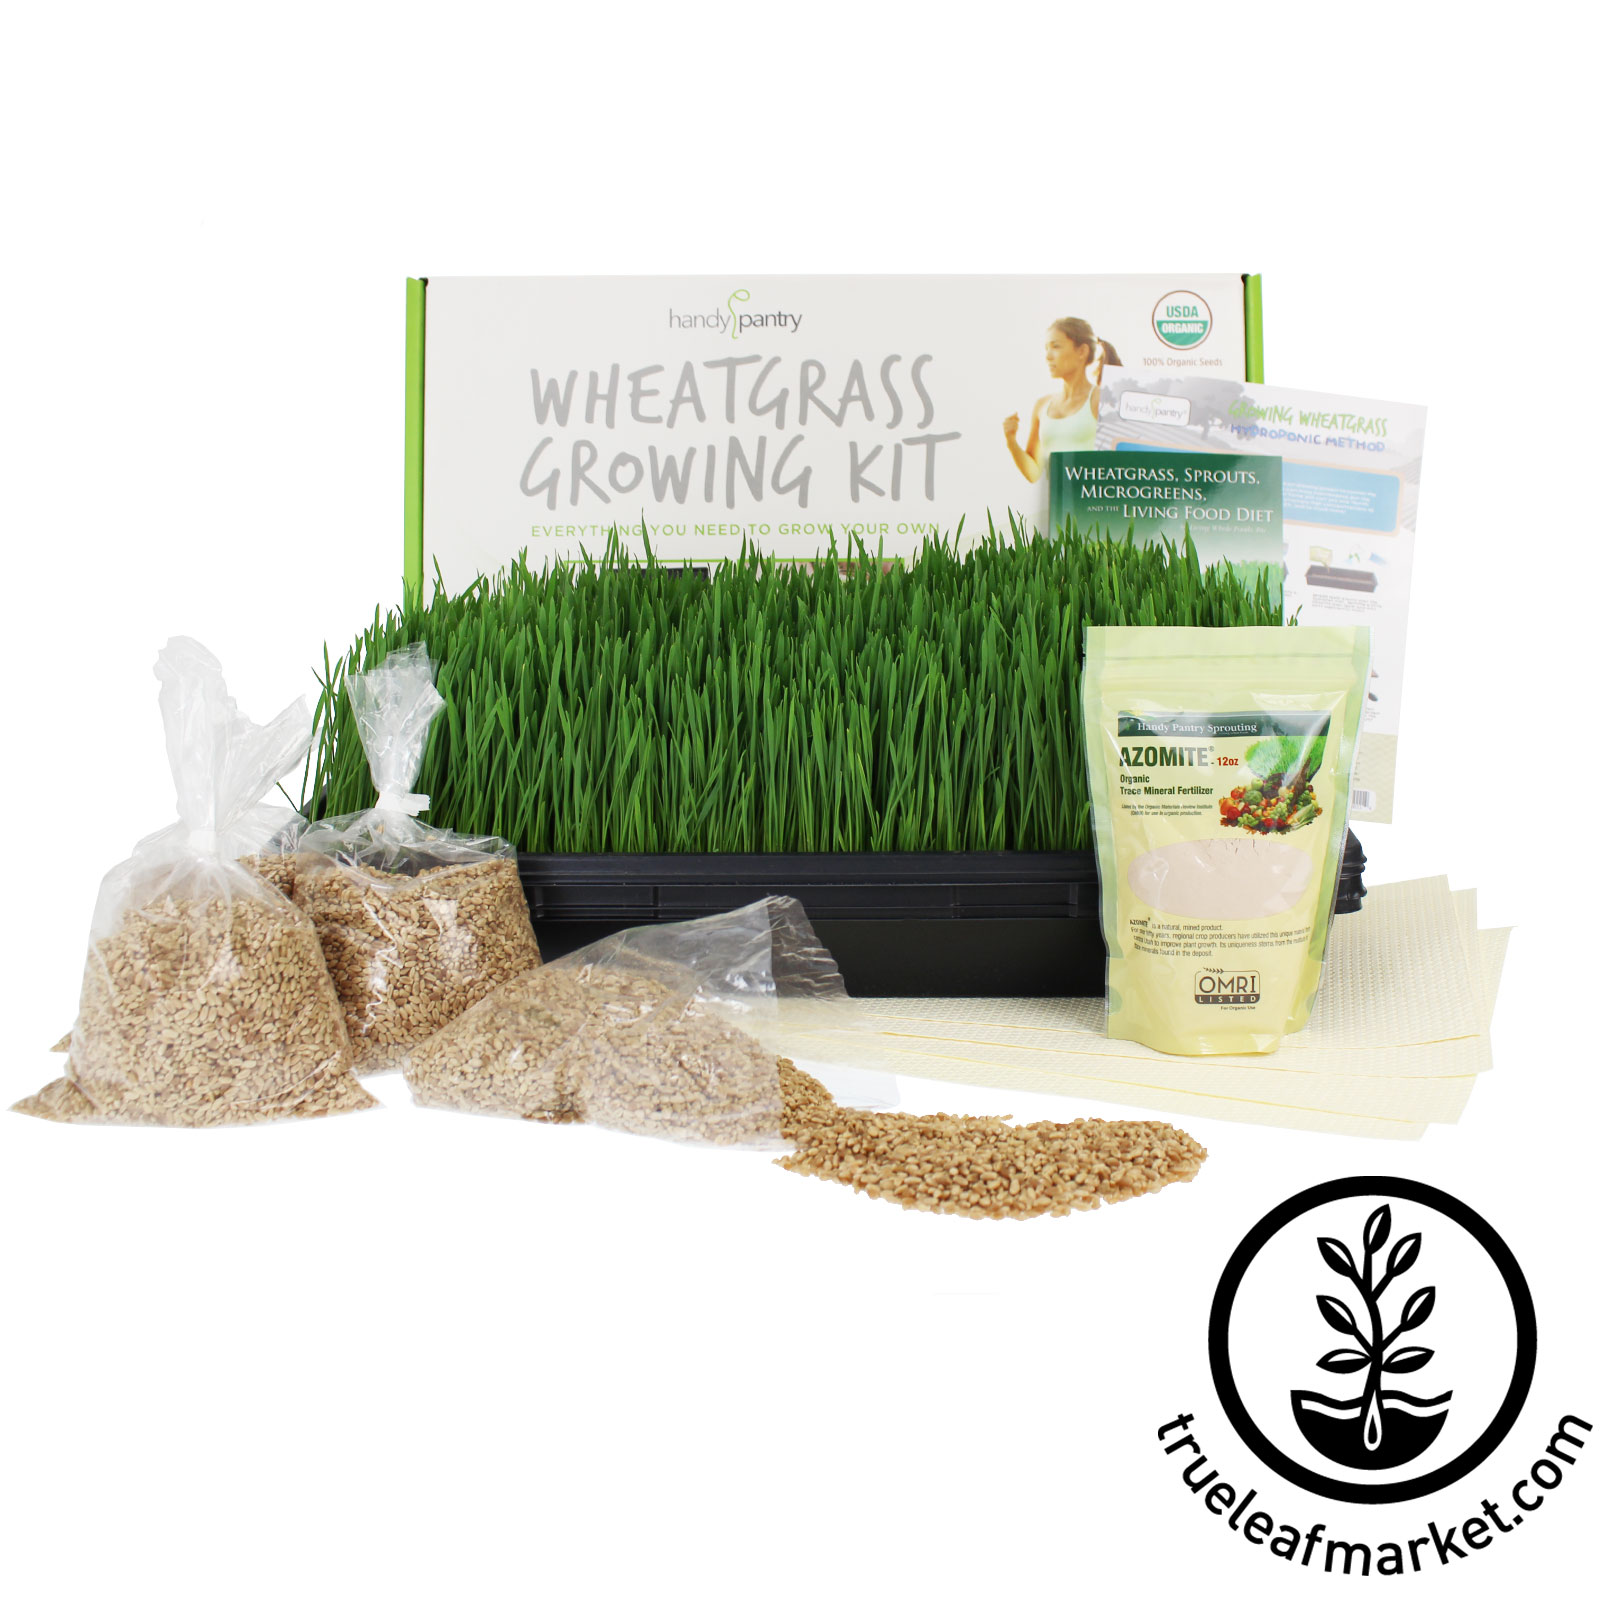 Micro-Mat Hydroponic Wheat grass kit